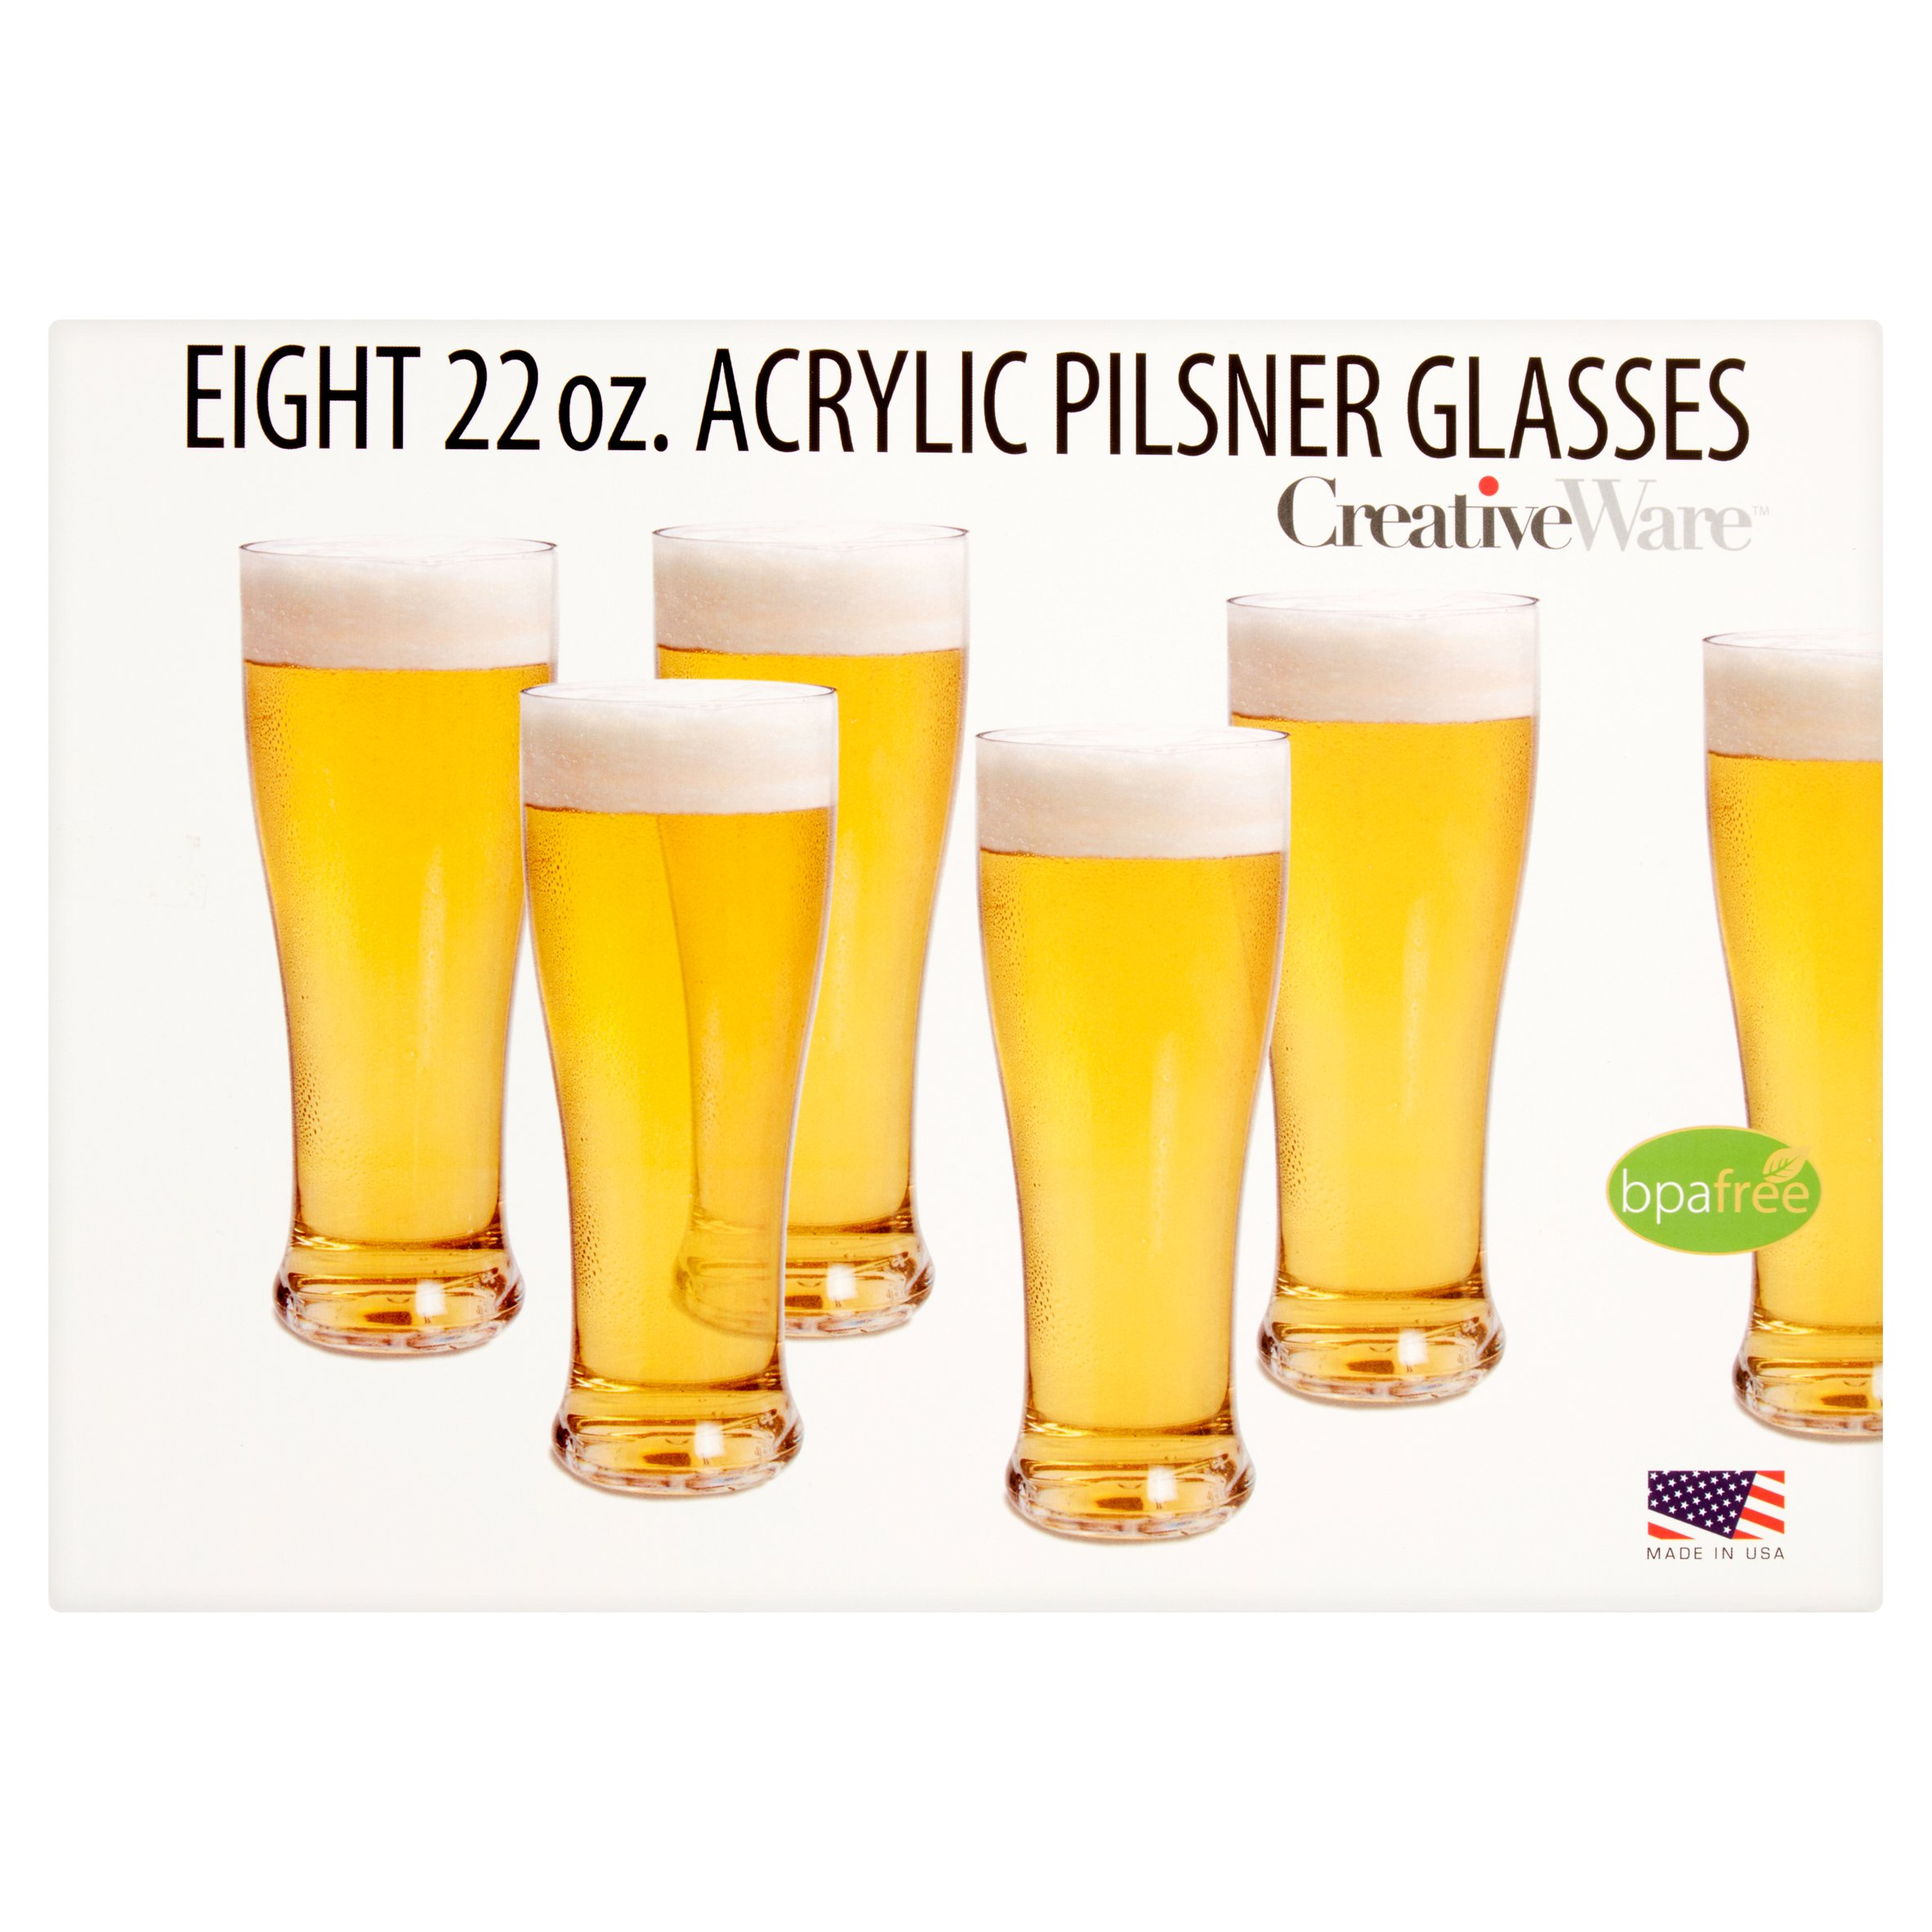 Creative Ware 22 oz. Eight Acrylic Pilsner Glasses